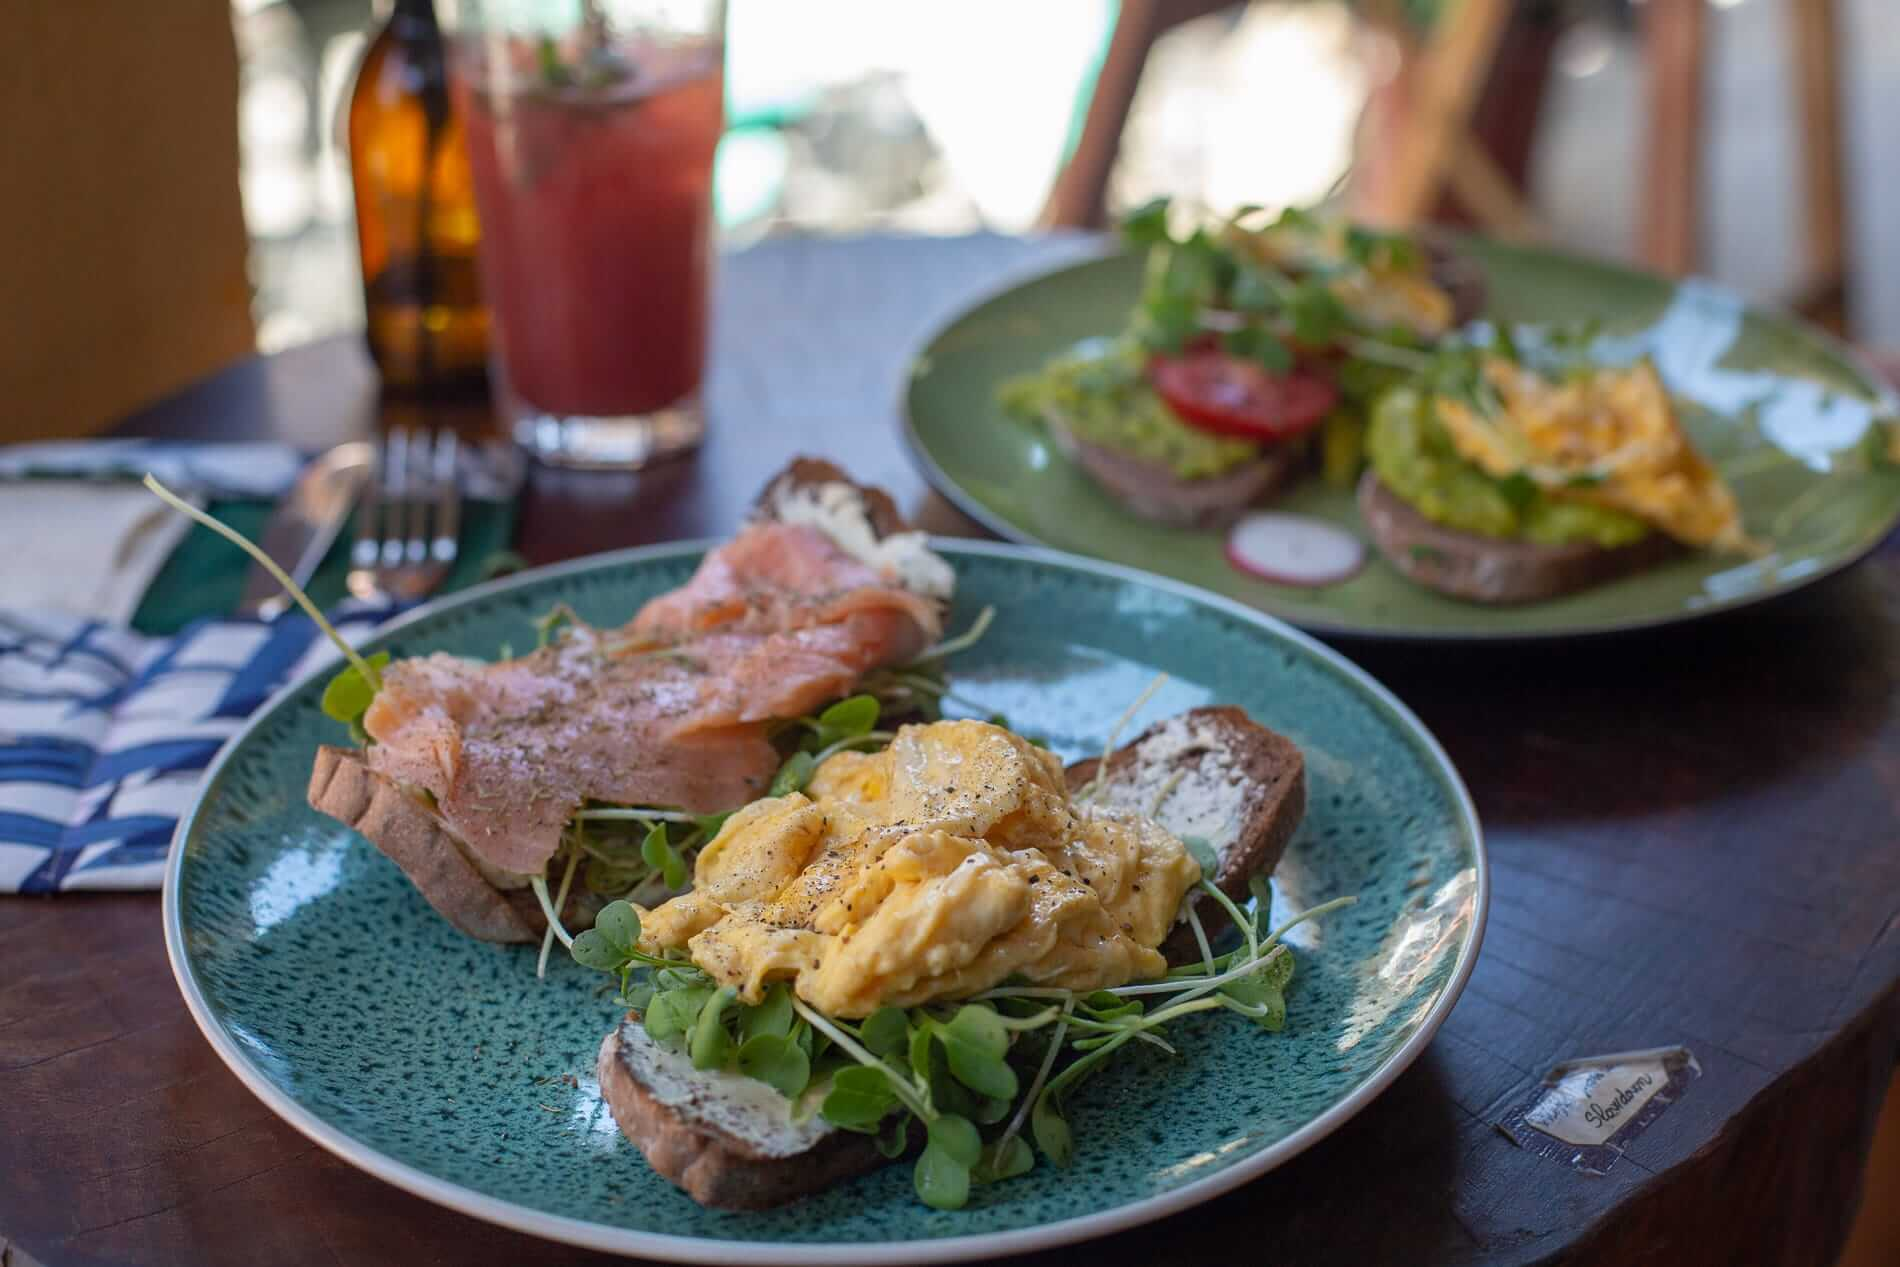 A plate of smoked salmon and scrambled egg